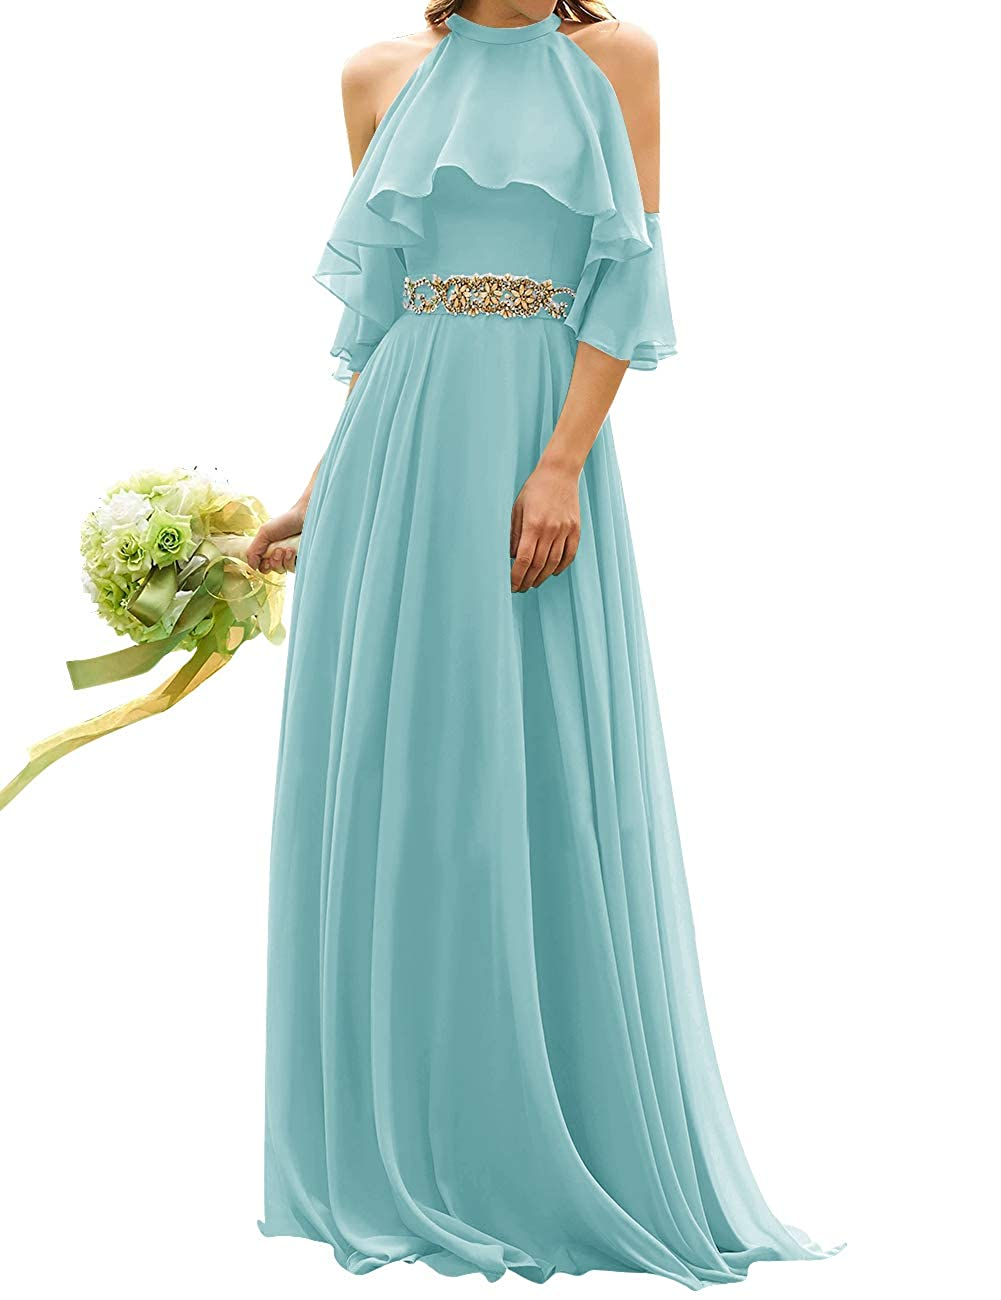 Ice bluee Uther Long Bridesmaid Dress Cold Shoulder Beaded Ruffle Sleeves Wedding Party Dresses